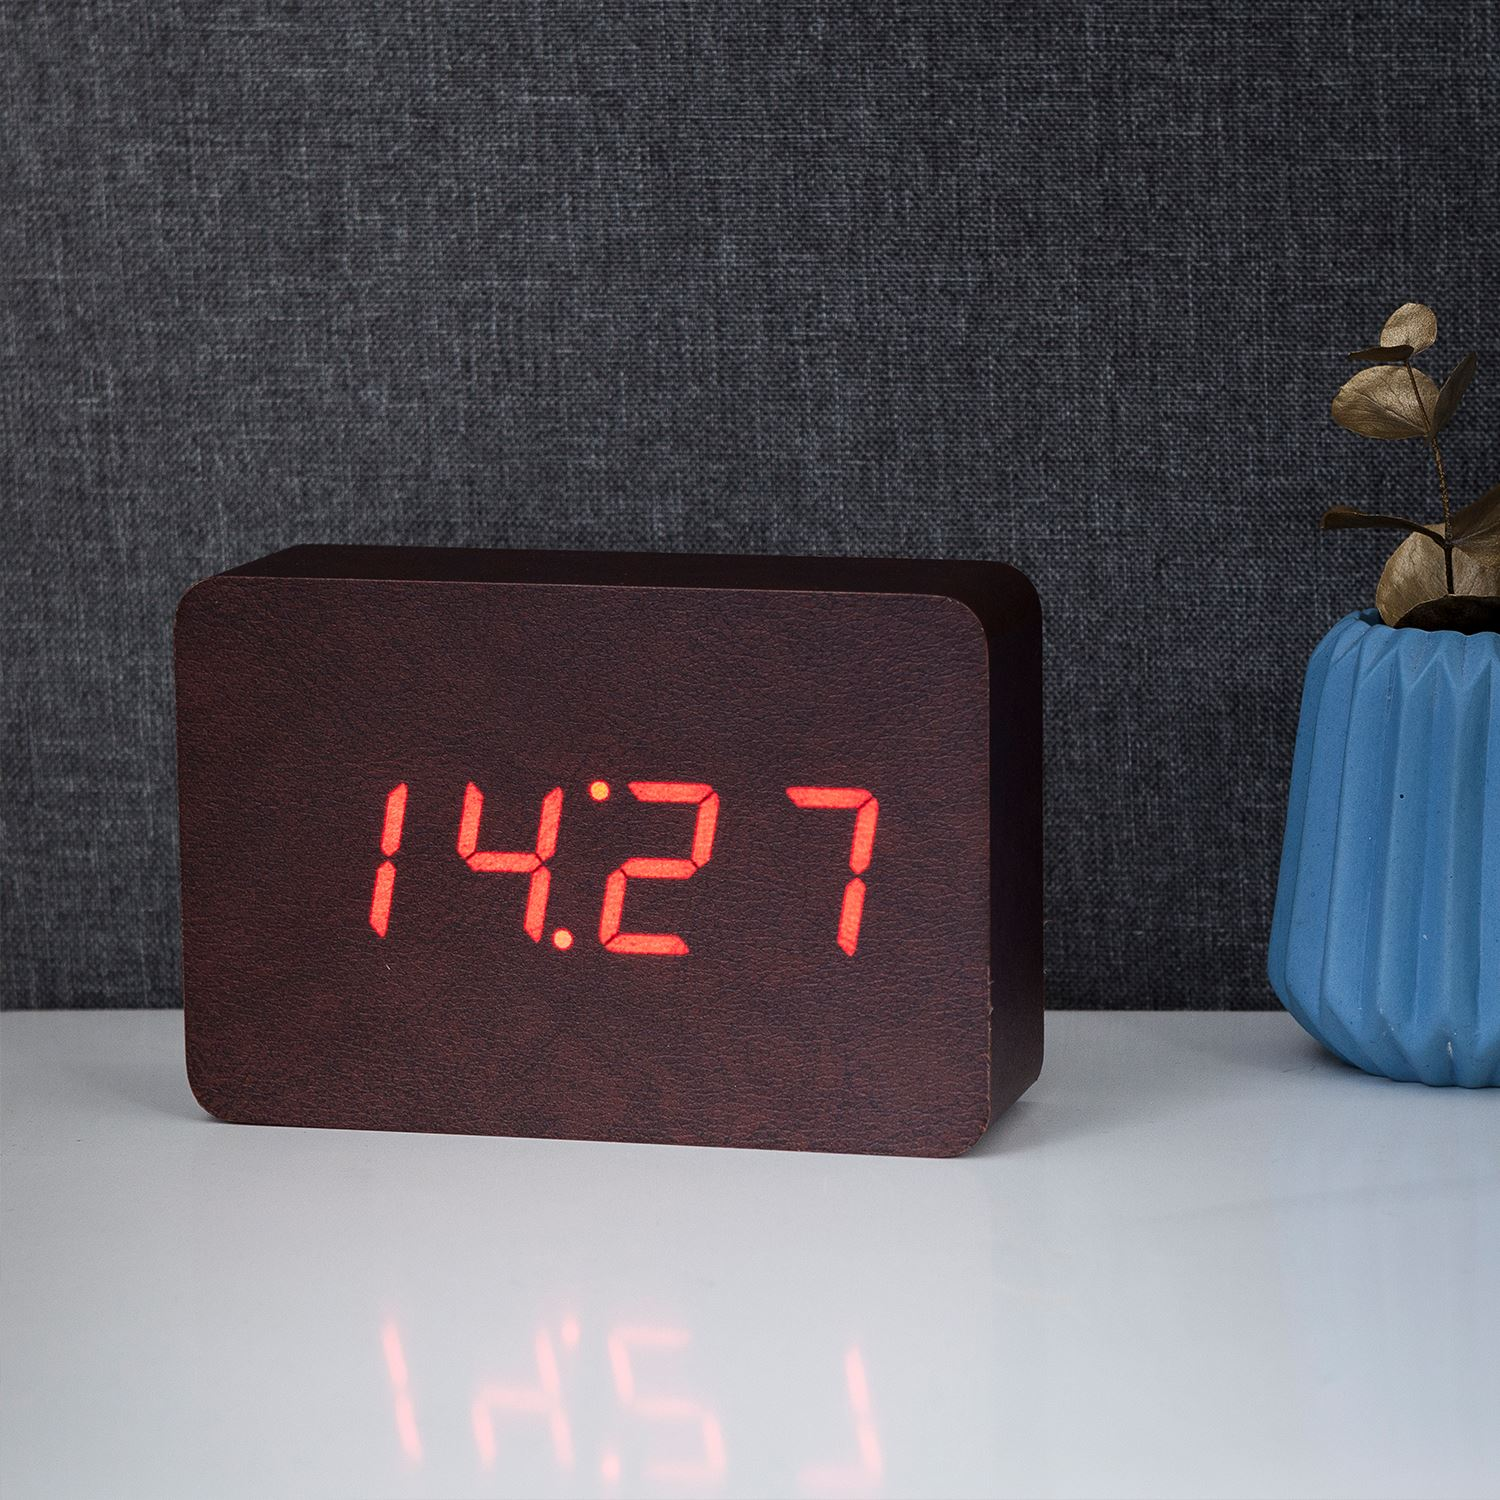 Brick Click Alarm Sound Clock Details Rechargeable Led With Activation About Gingko rQdtCsh